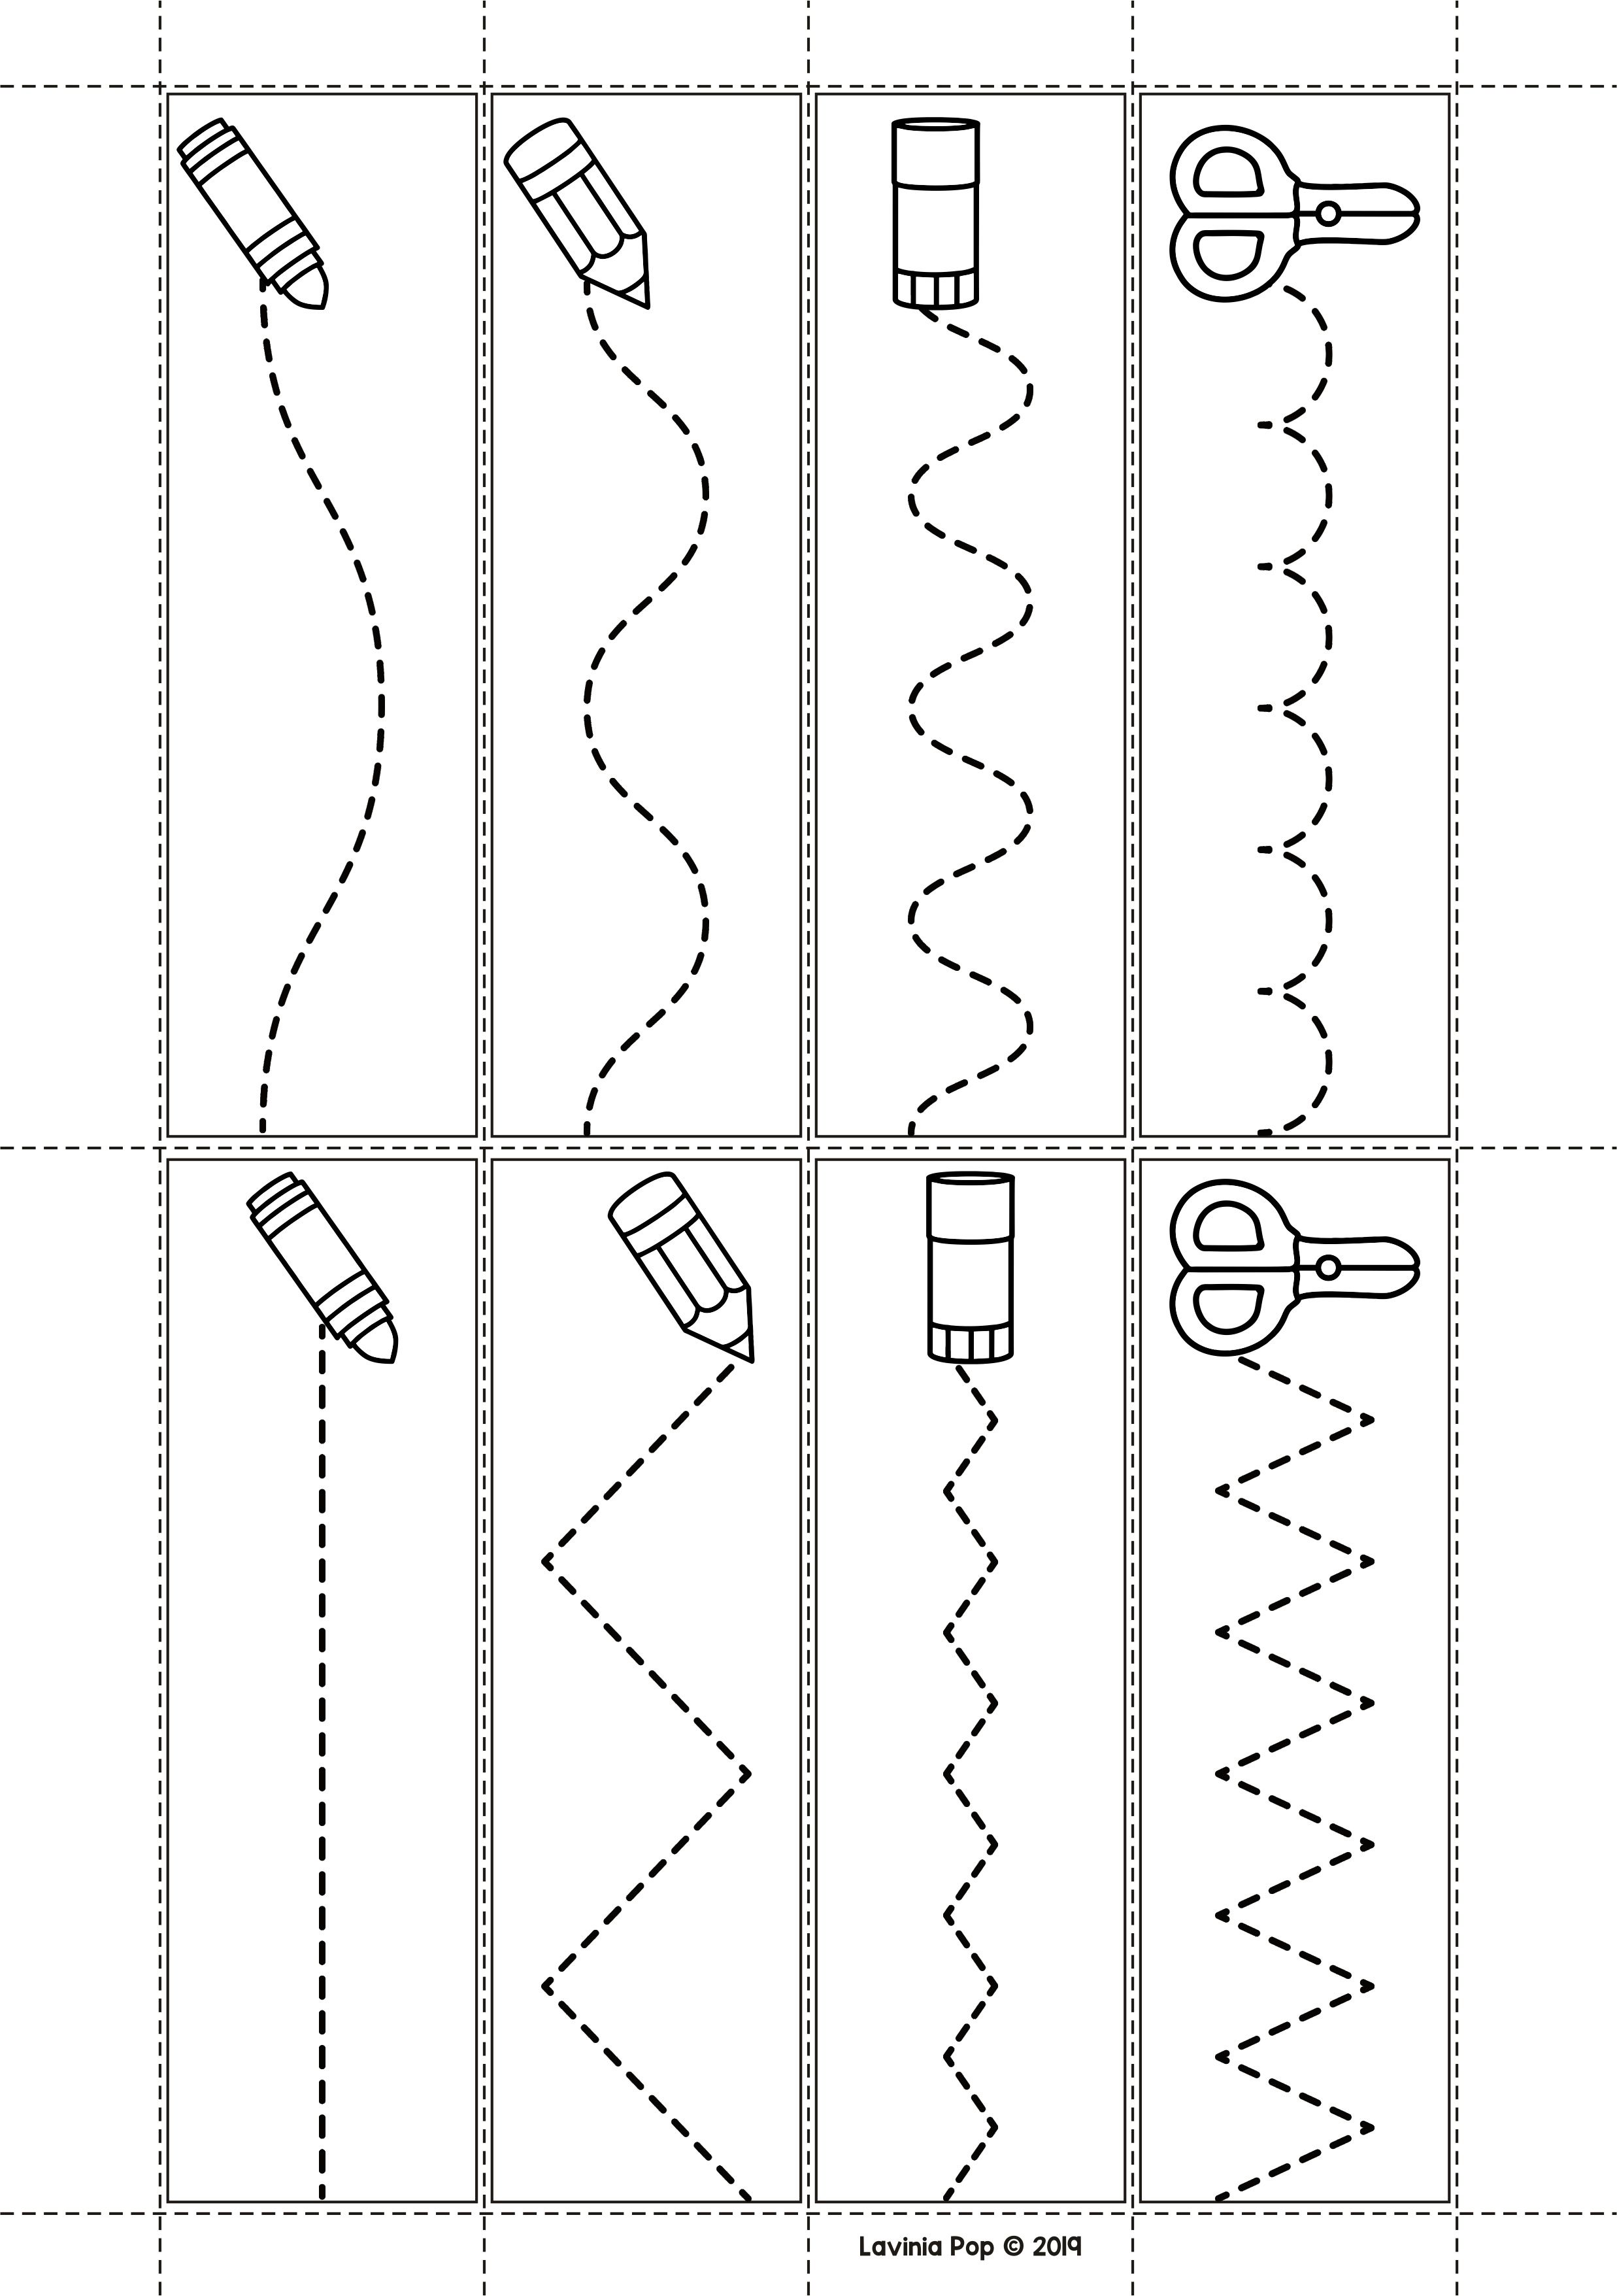 Fine Motor Printable Activities For August Preschool Worksheets Kids Worksheets Preschool Preschool Fine Motor Activities Free preschool cutting worksheets